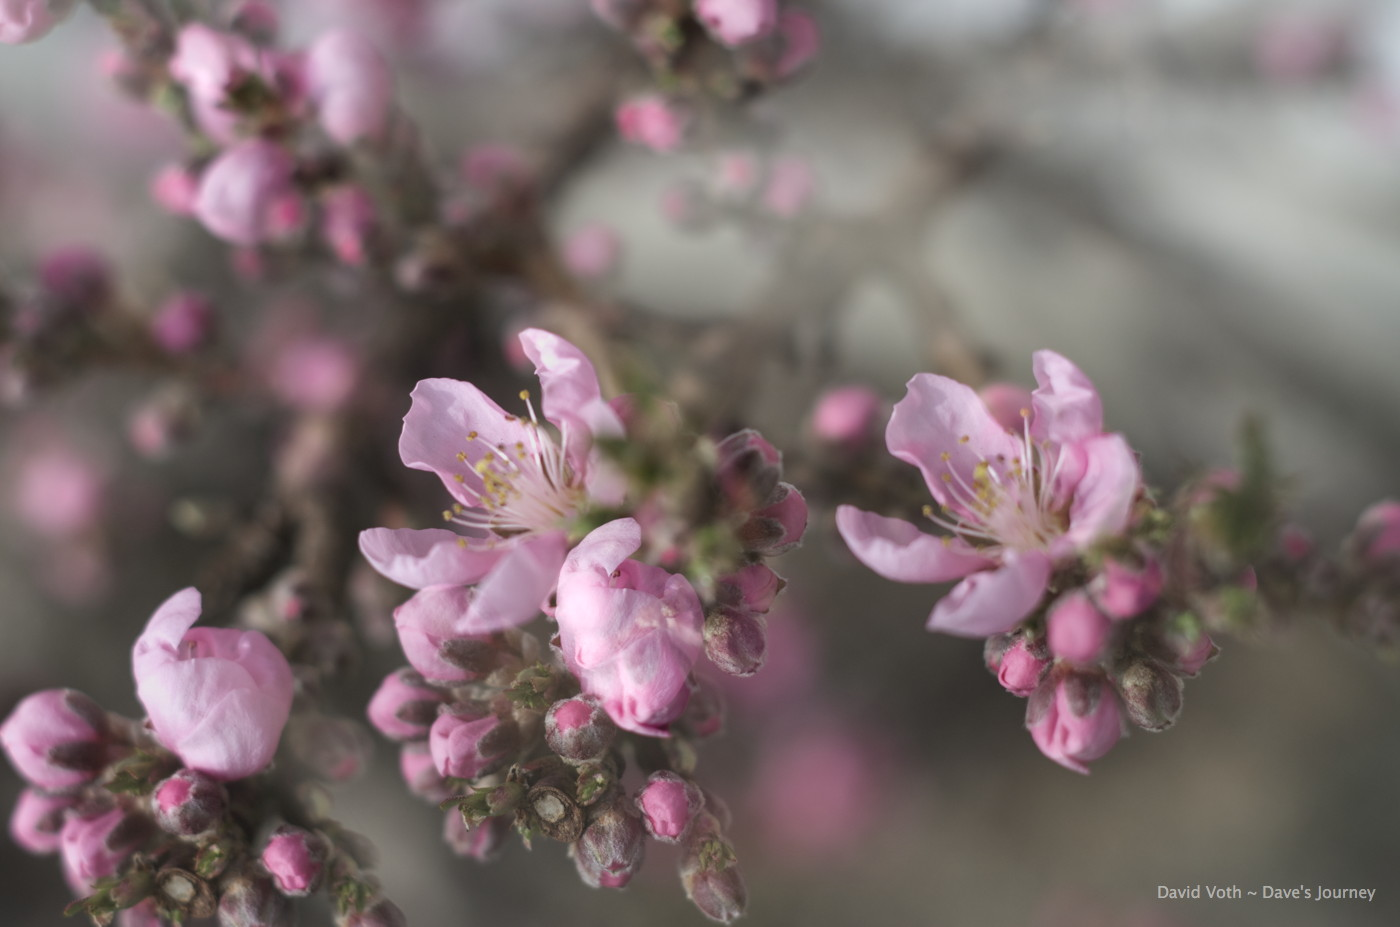 Double exposure of peach blossoms